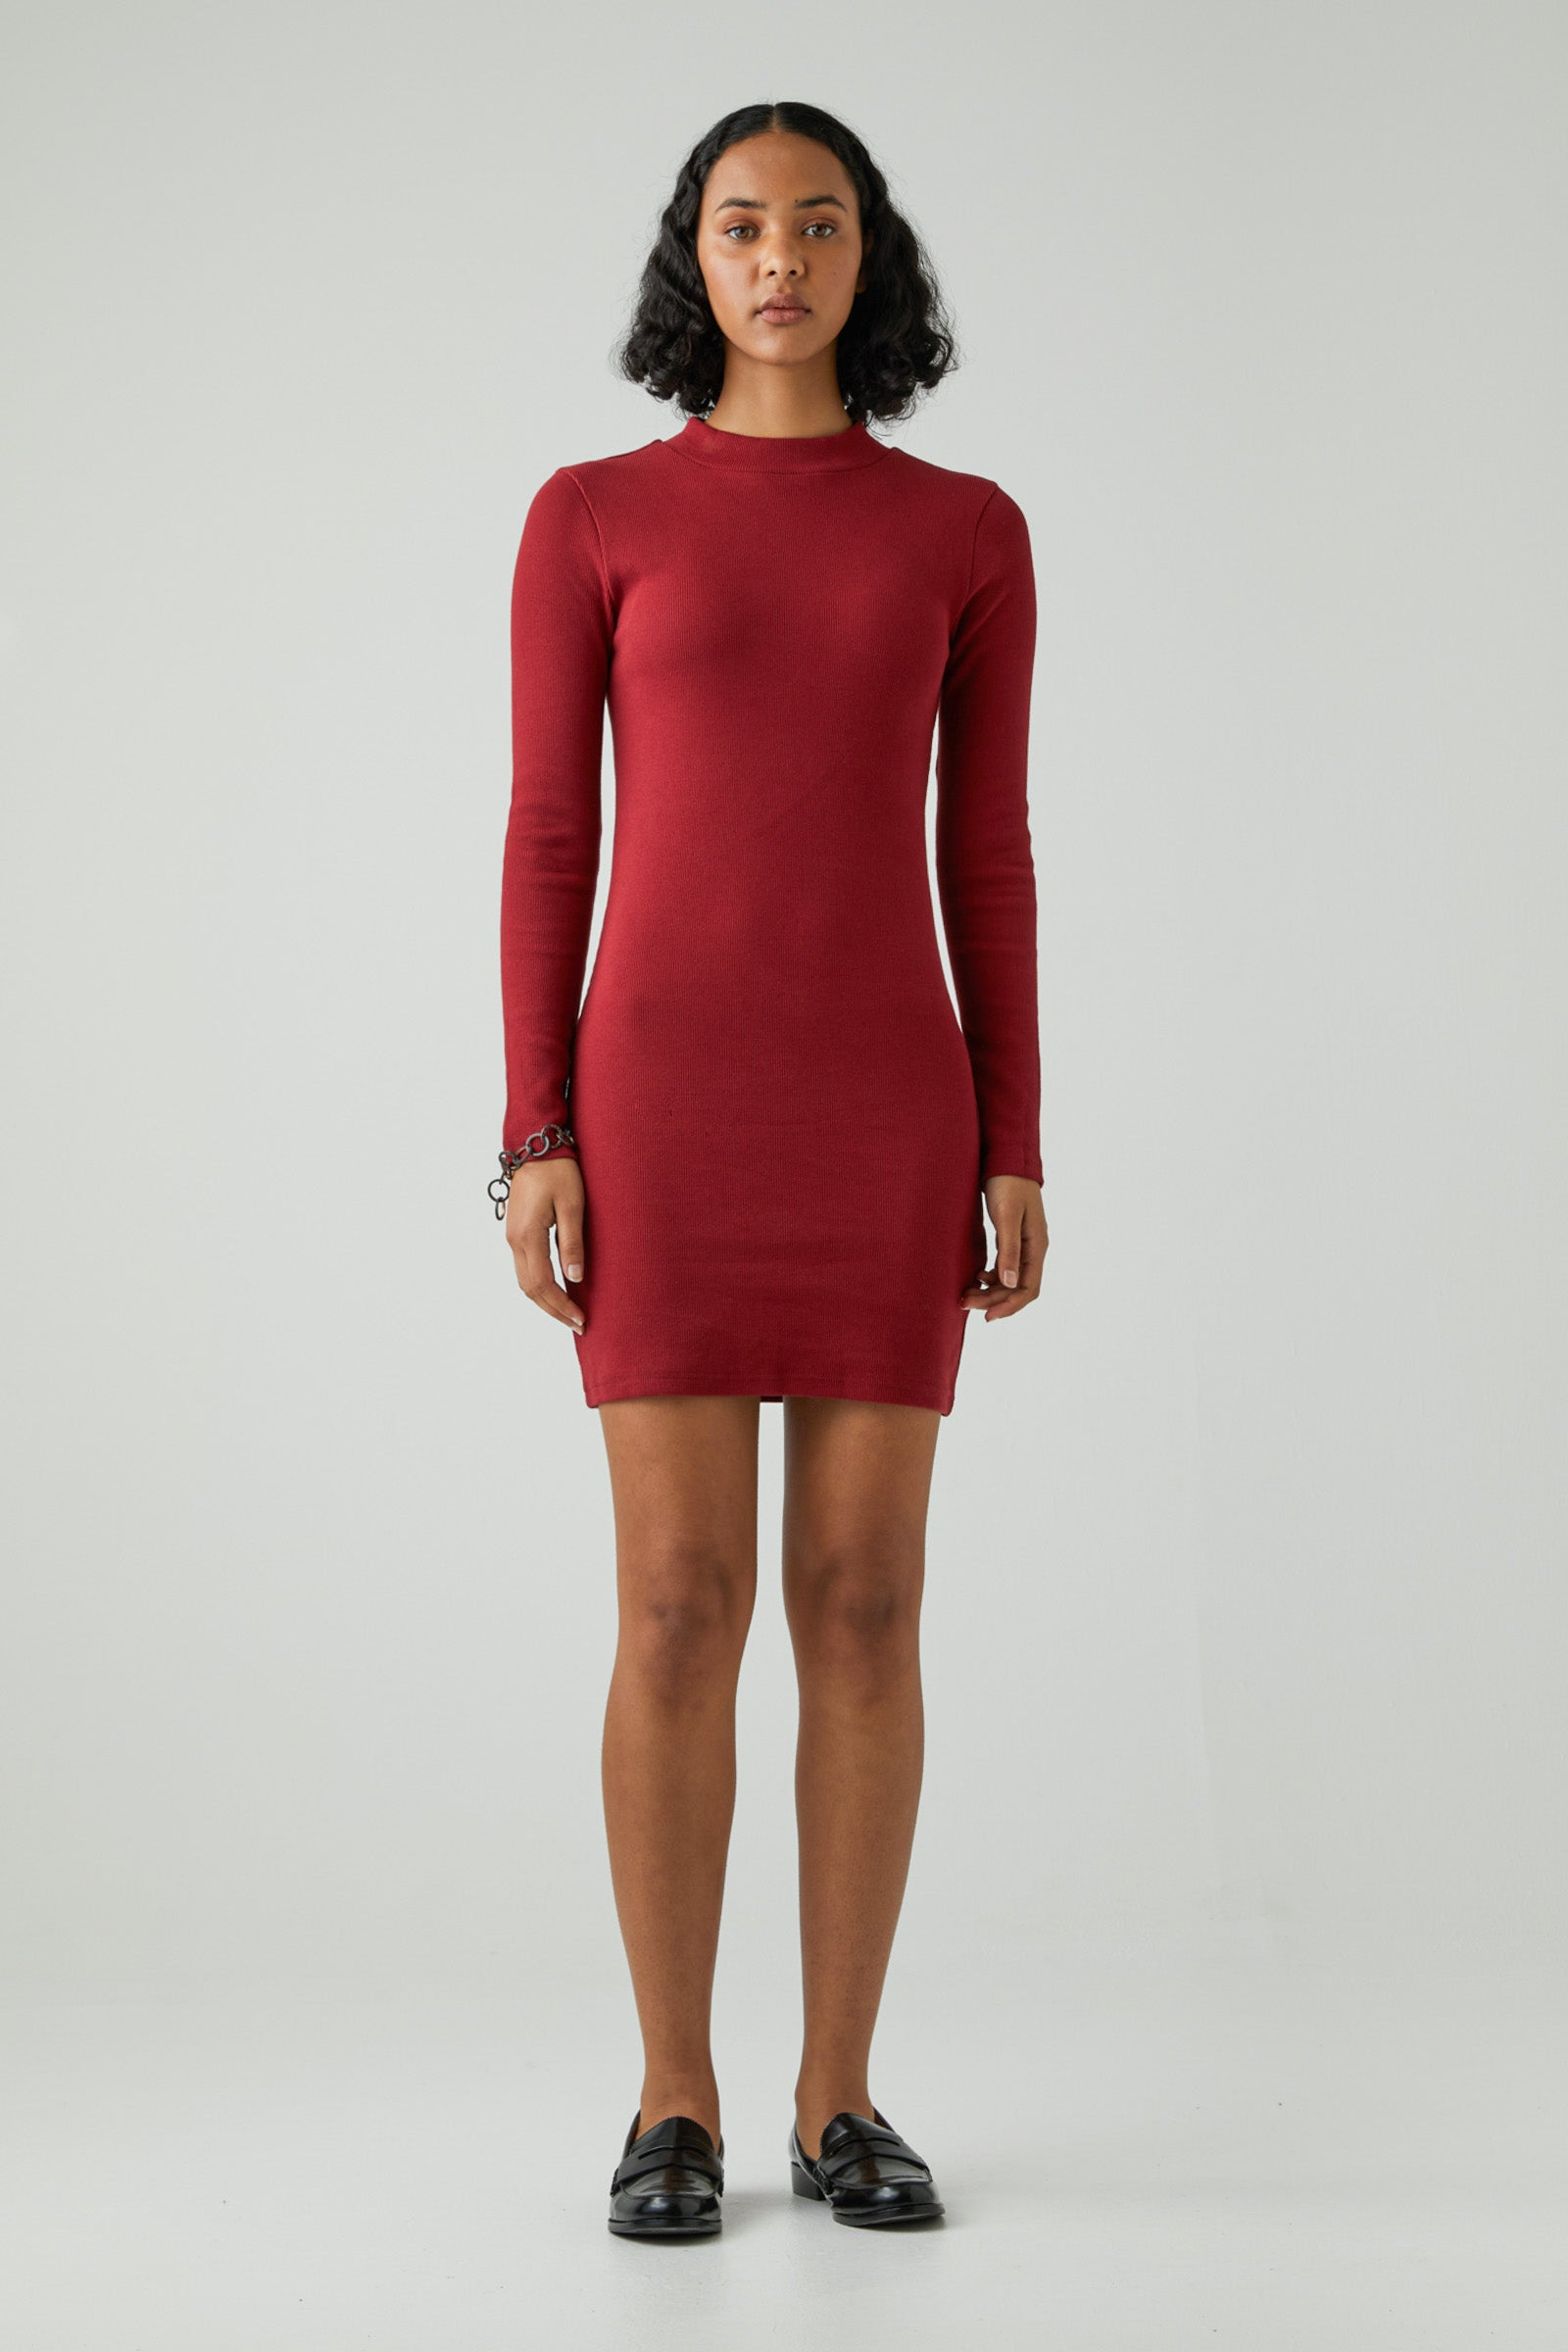 Jonesy Long Sleeve Dress - Deep Red